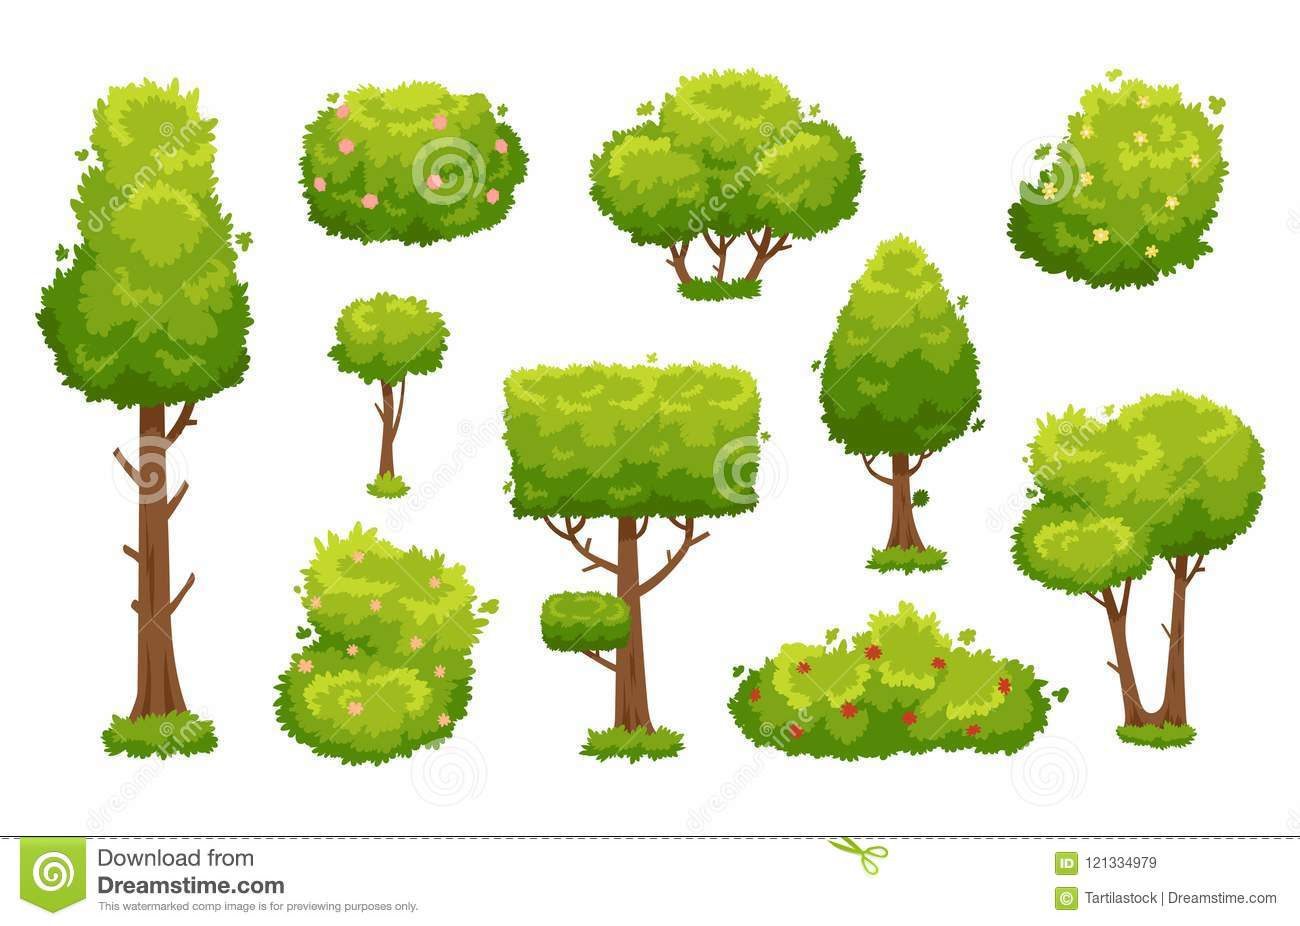 Cartoon Trees And Bushes. Green Plants With Flowers For